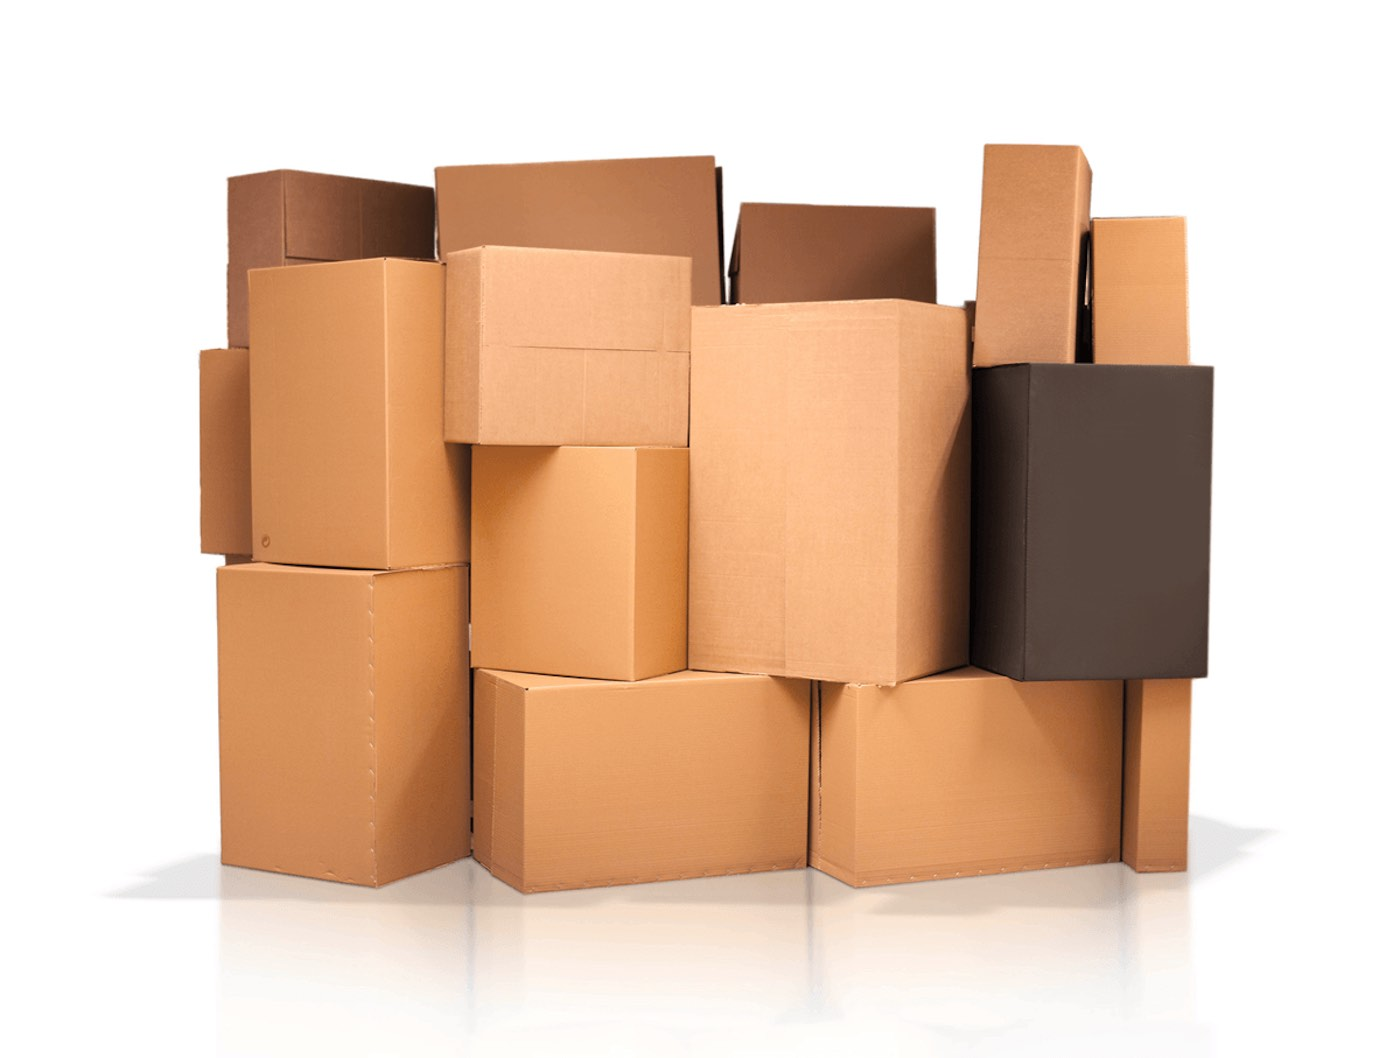 How many stages are involved in the manufacturing of Custom Kraft boxes